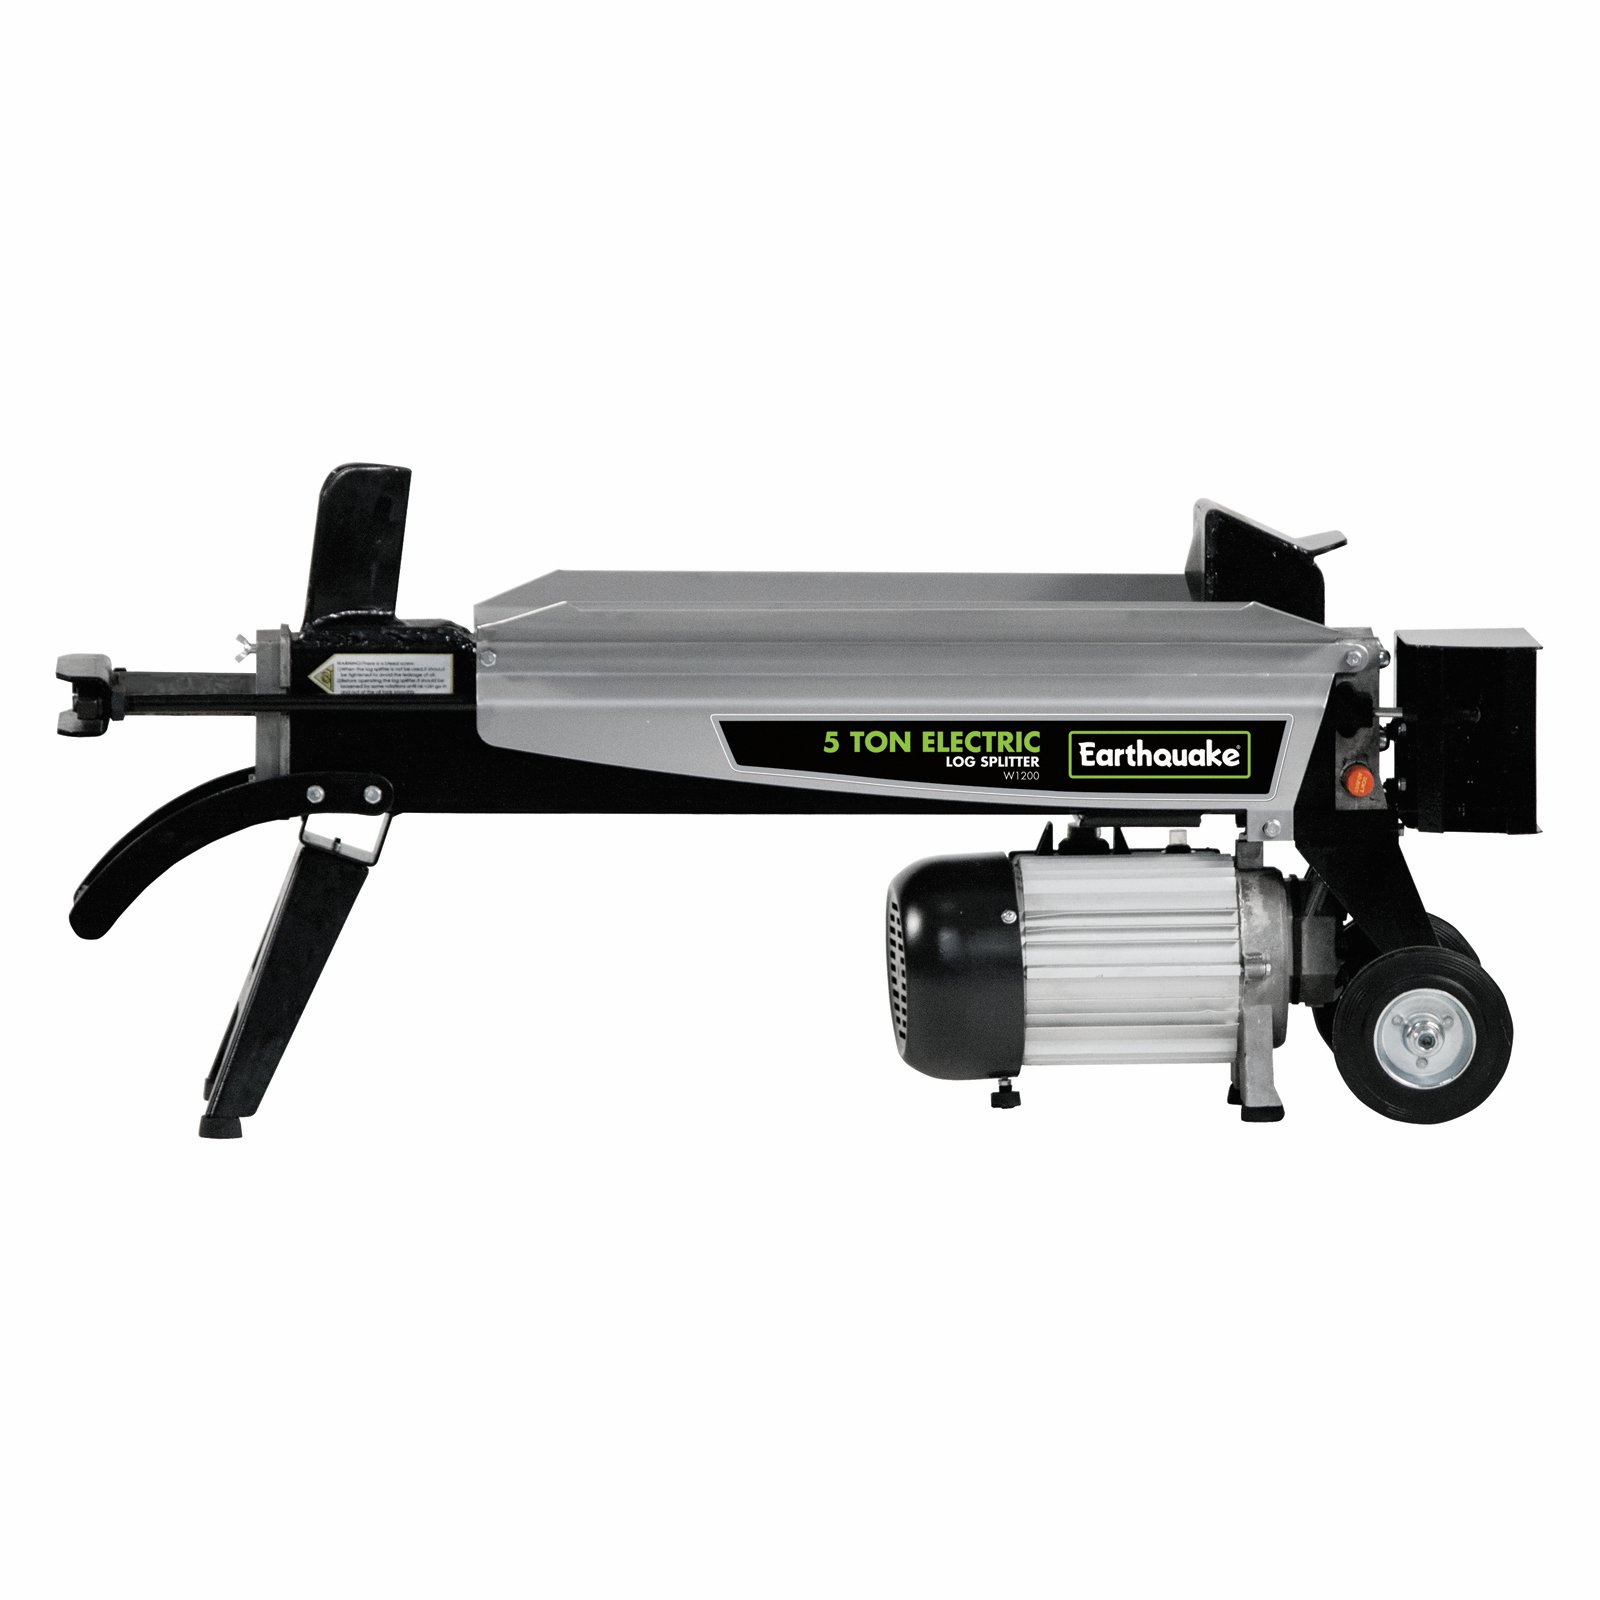 Earthquake W1200 Compact 5-Ton Electric Log Splitter, Silver by Ardisam Inc